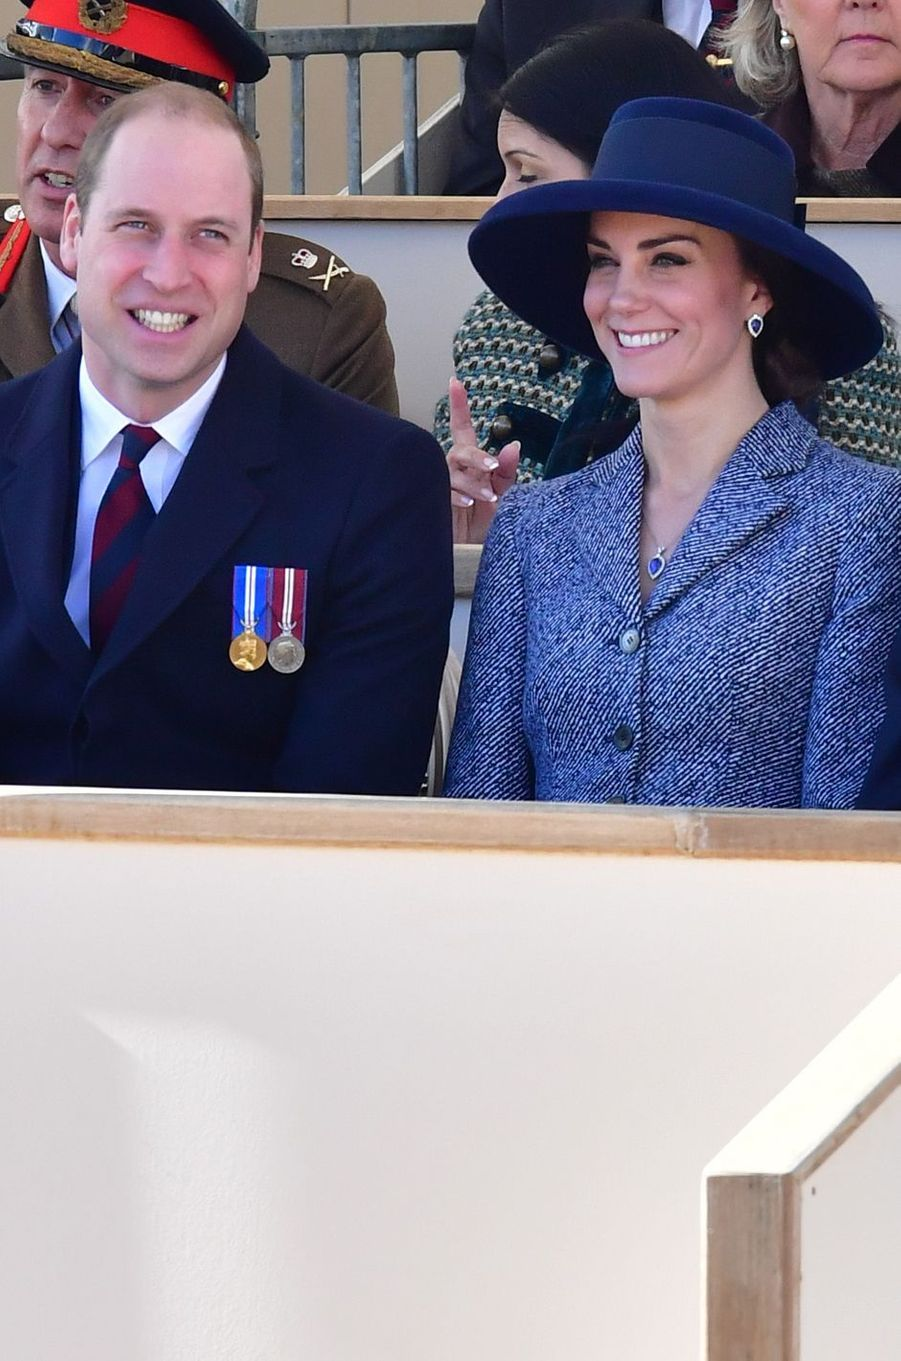 Le prince William et la duchesse de Cambridge, née Kate Middleton, à Londres le 9 février 2017